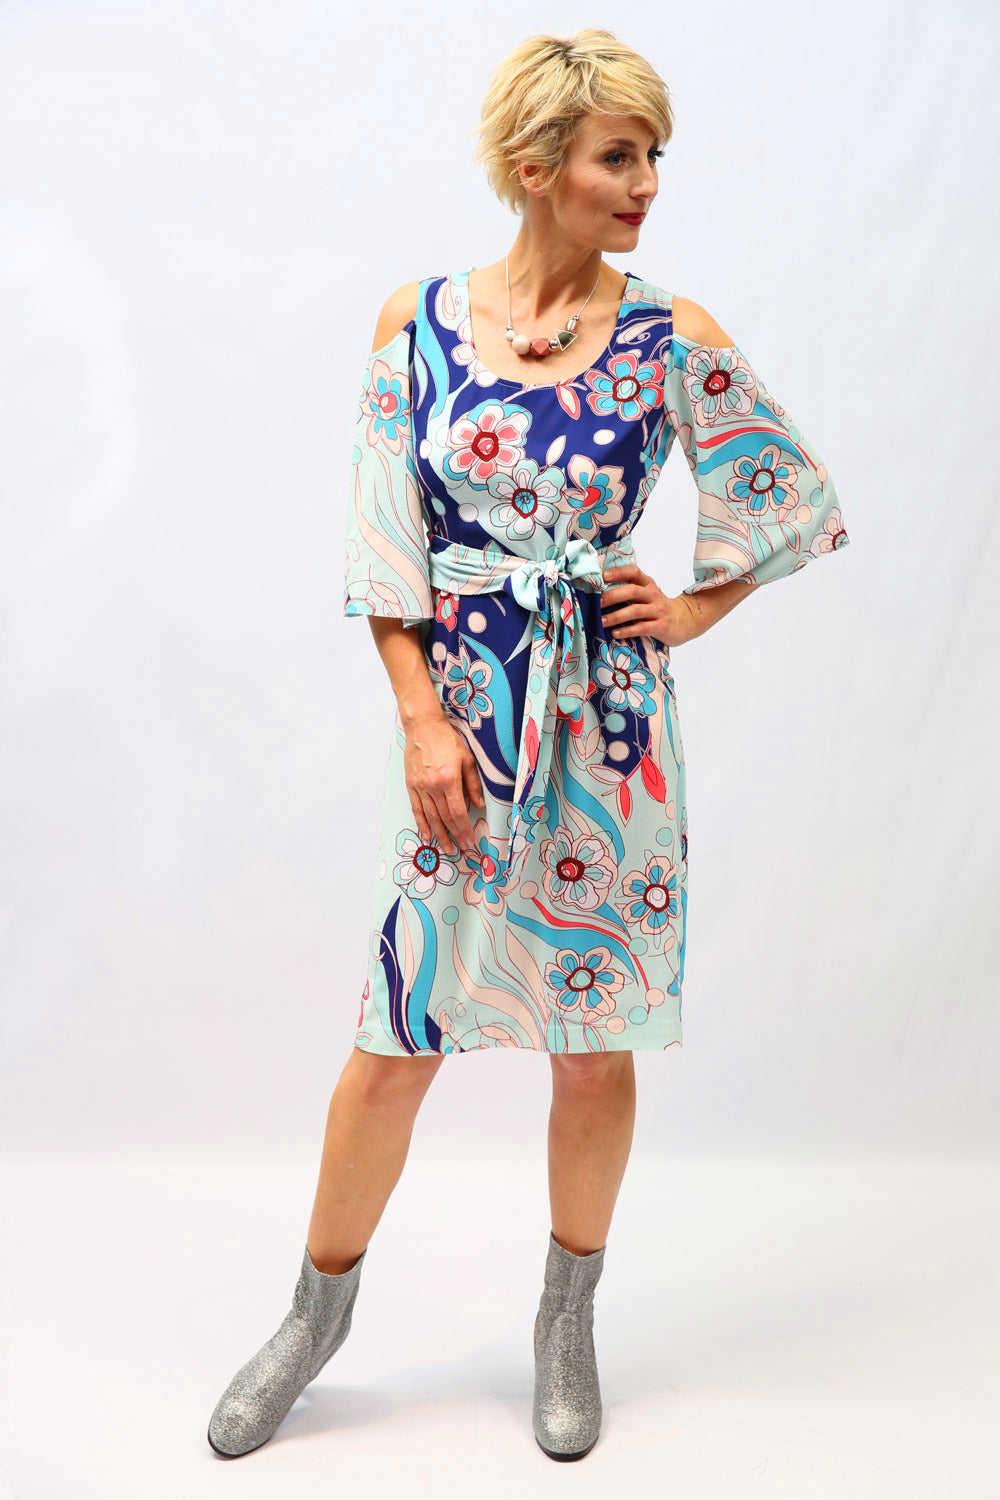 Anyta Dress | Addicted to Life | New Zealand Fashion Designer | Annah Stretton